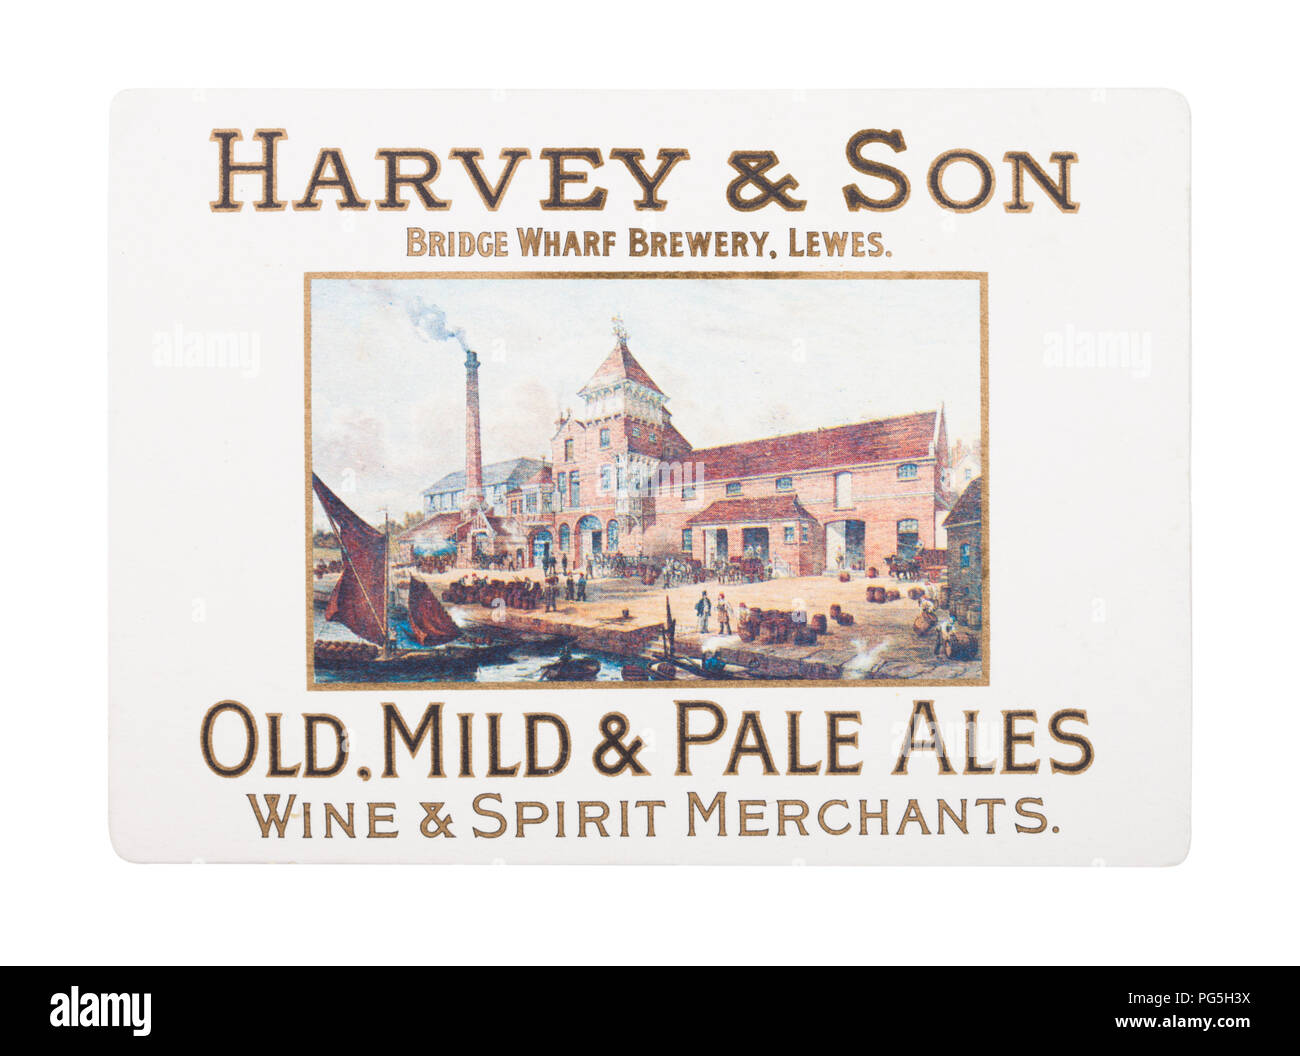 LONDON, UK - AUGUST 22, 2018: Harvey & Son Old Mild & Pale Ale paper beer beermat coaster isolated on white background. - Stock Image